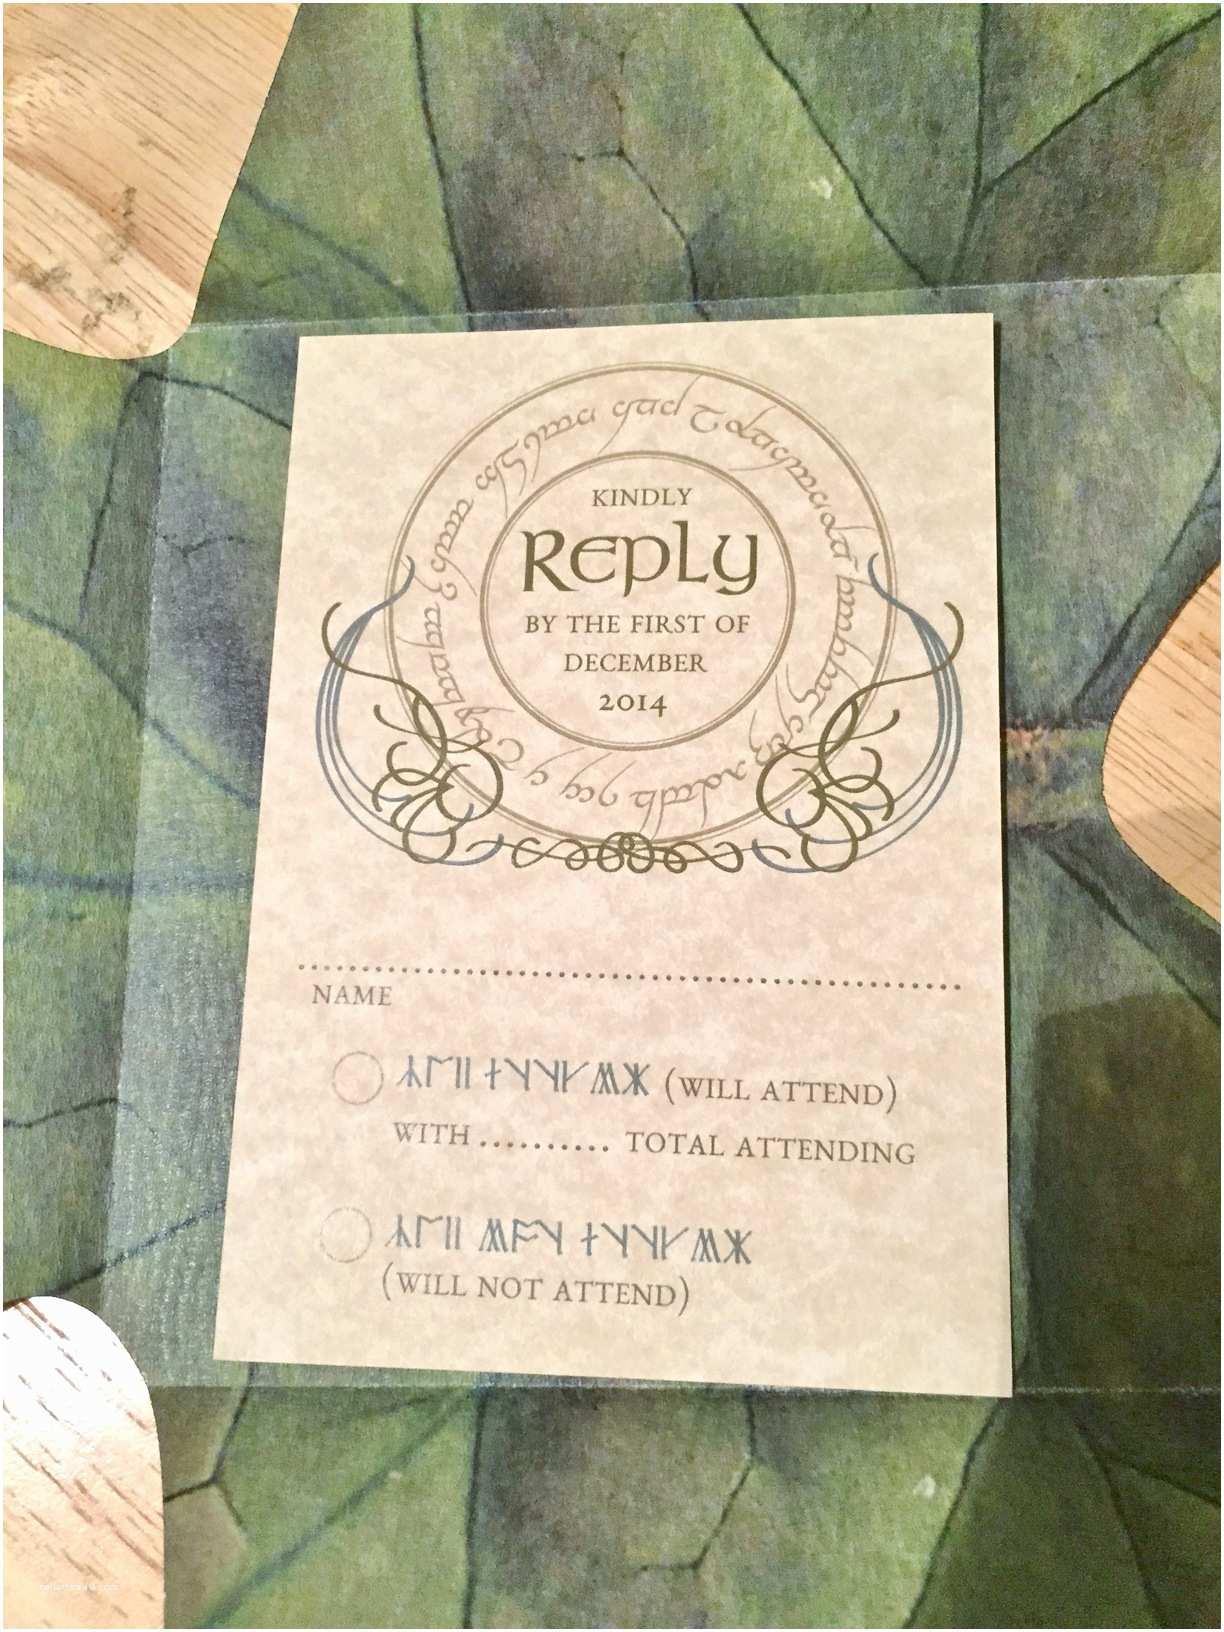 Lord Of the Rings Wedding Invitations An Actual Review Of the Best Lord Of the Rings Wedding